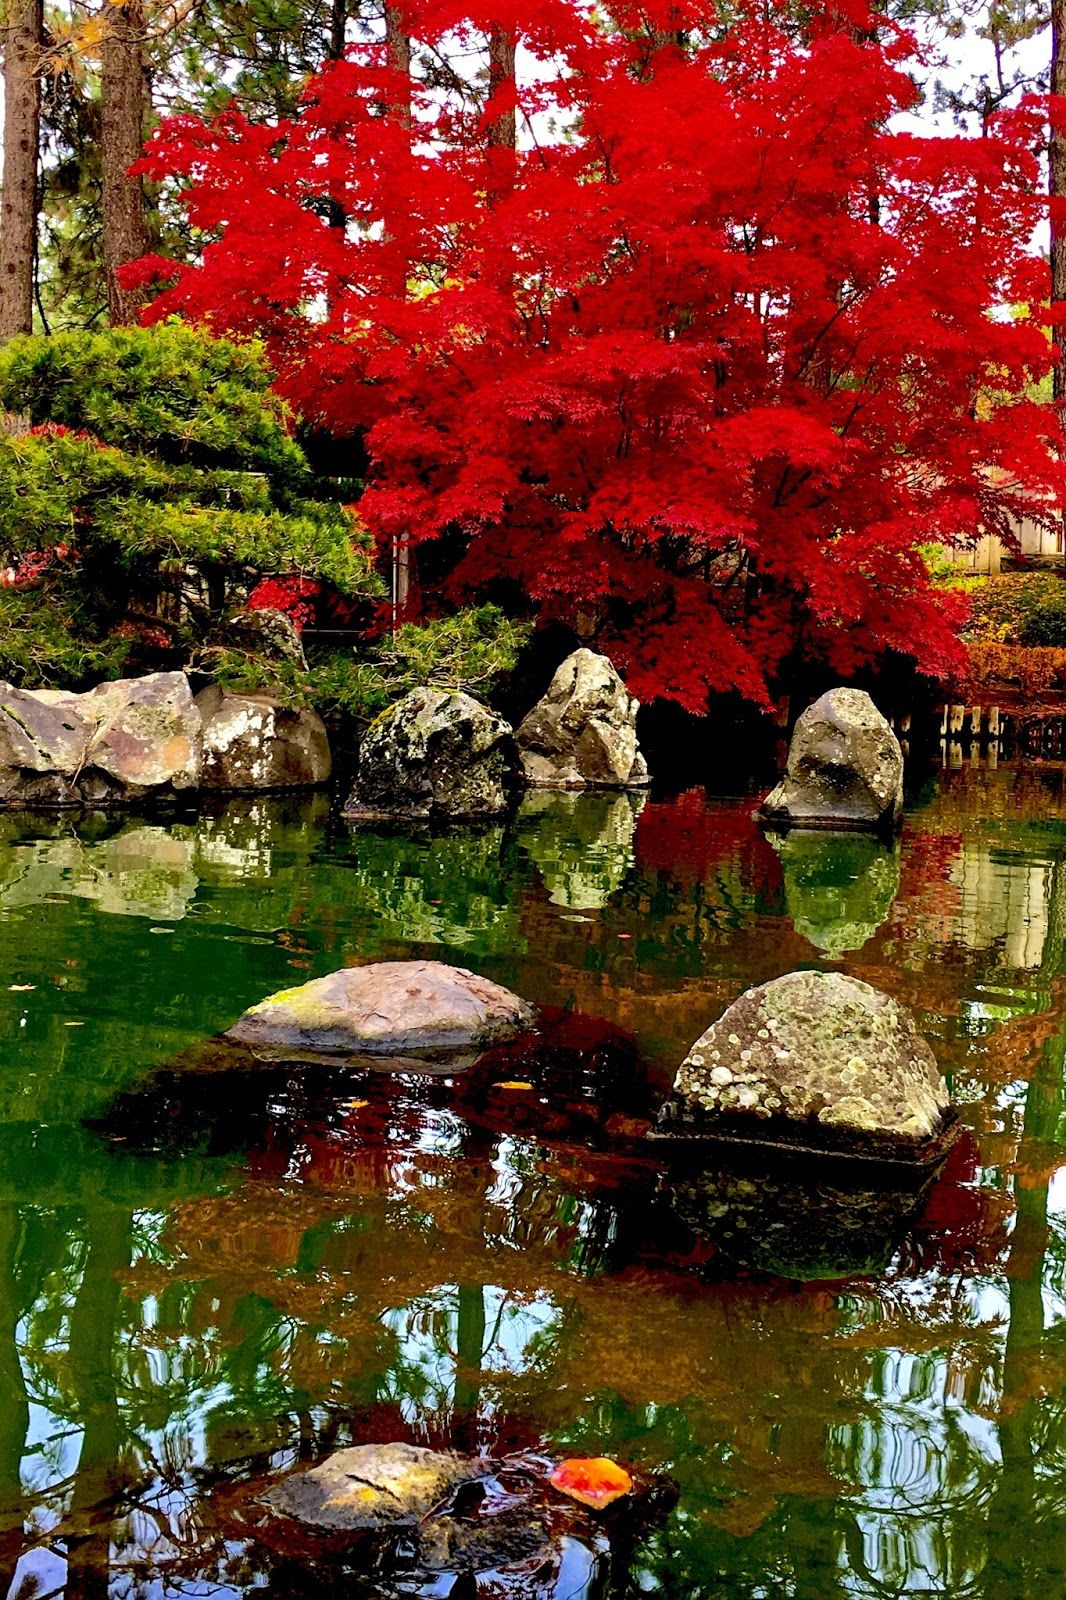 Japanese Stroll Garden Springfield: Travel Tips: Research And Discover Adventure In Your Own